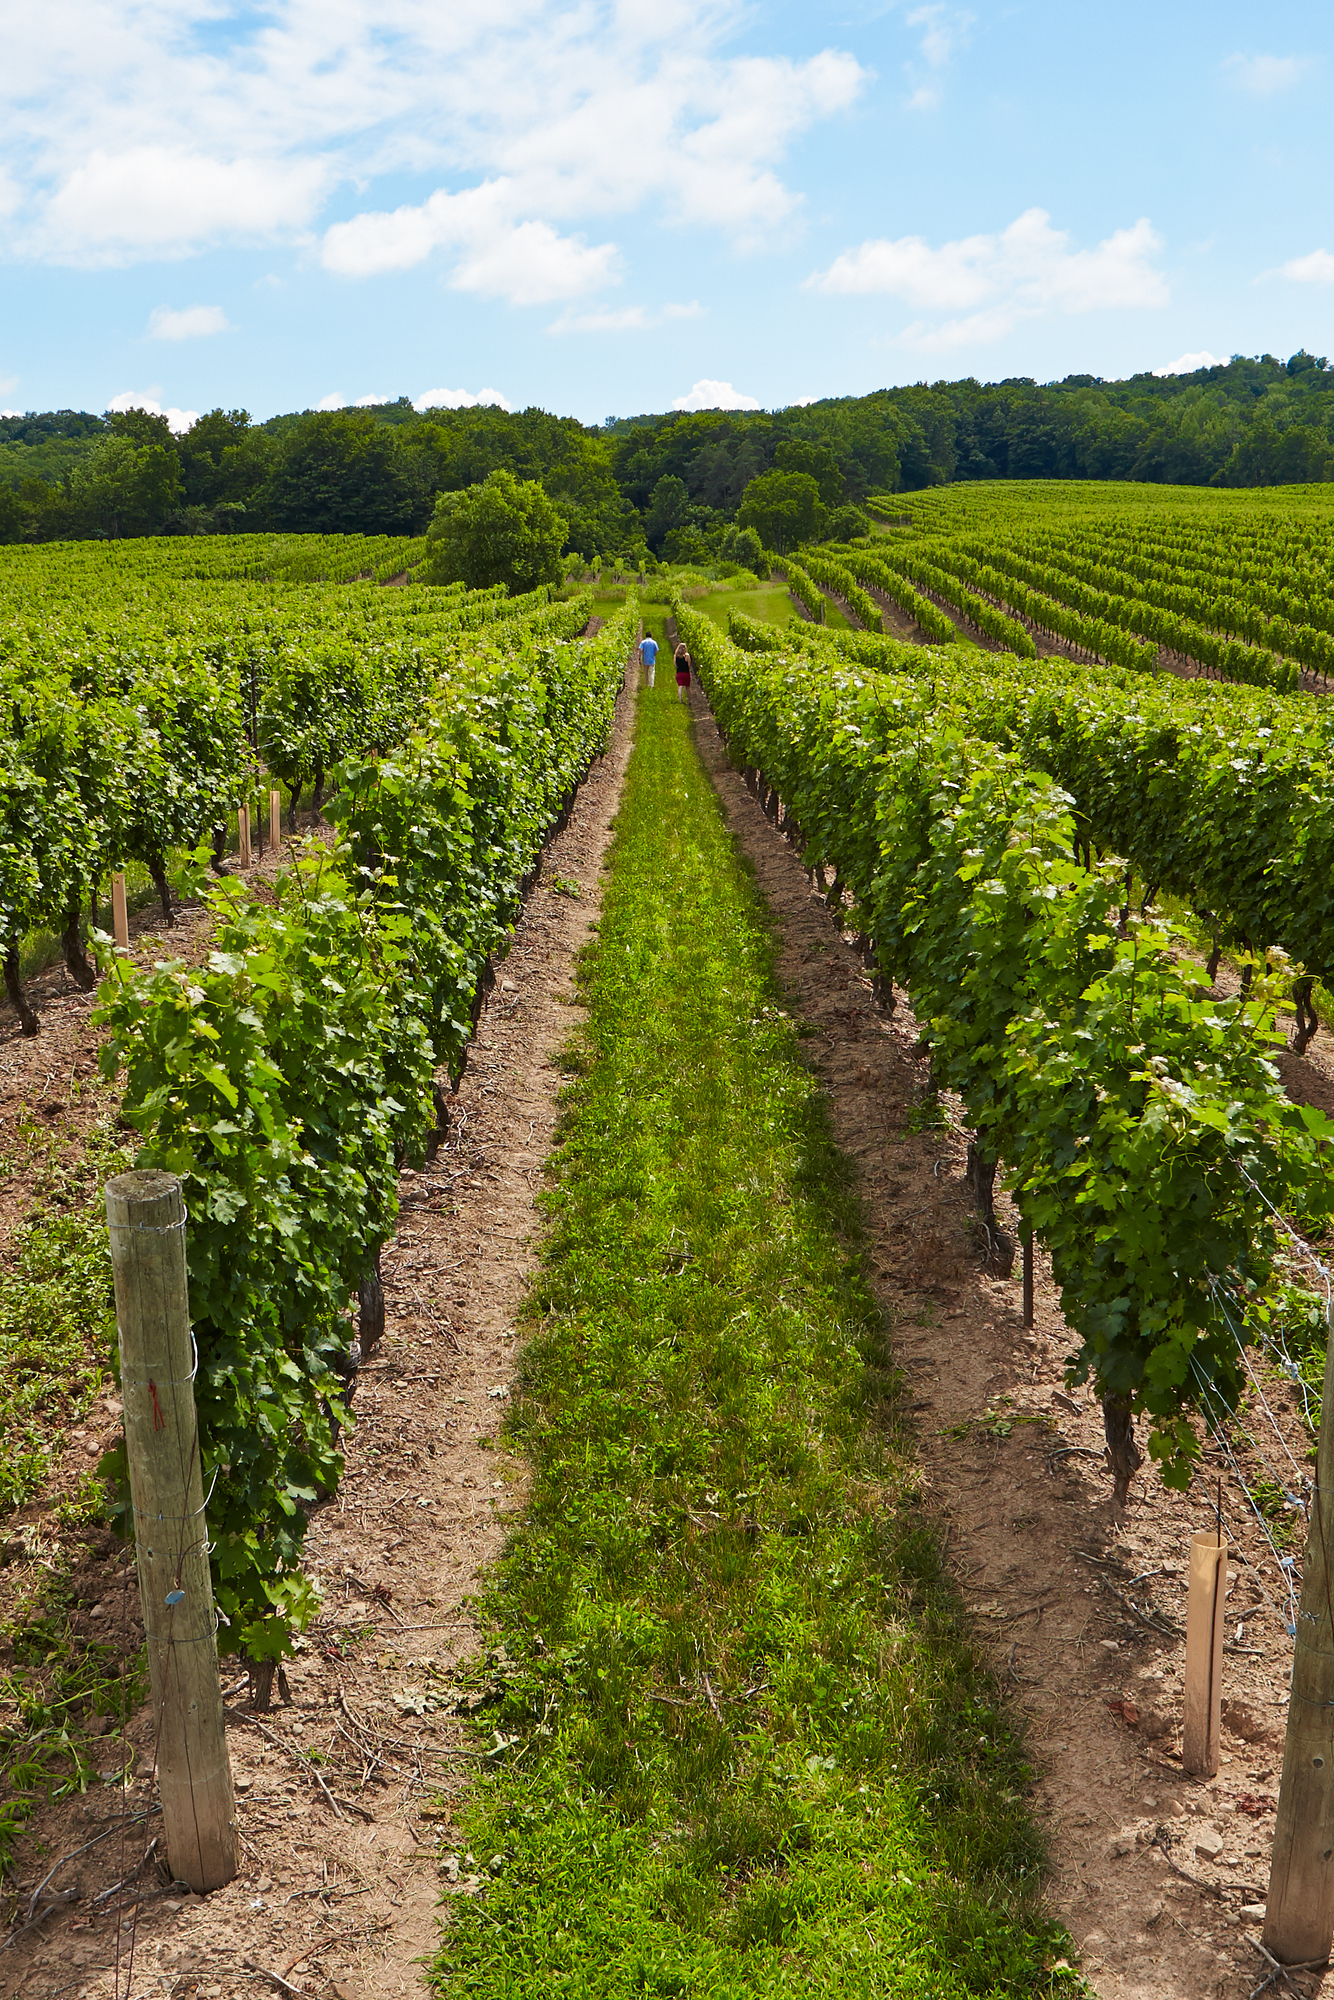 Niagara Vineyards, just one of 27 amazing things to do in Niagara, Canada - check out the rest!